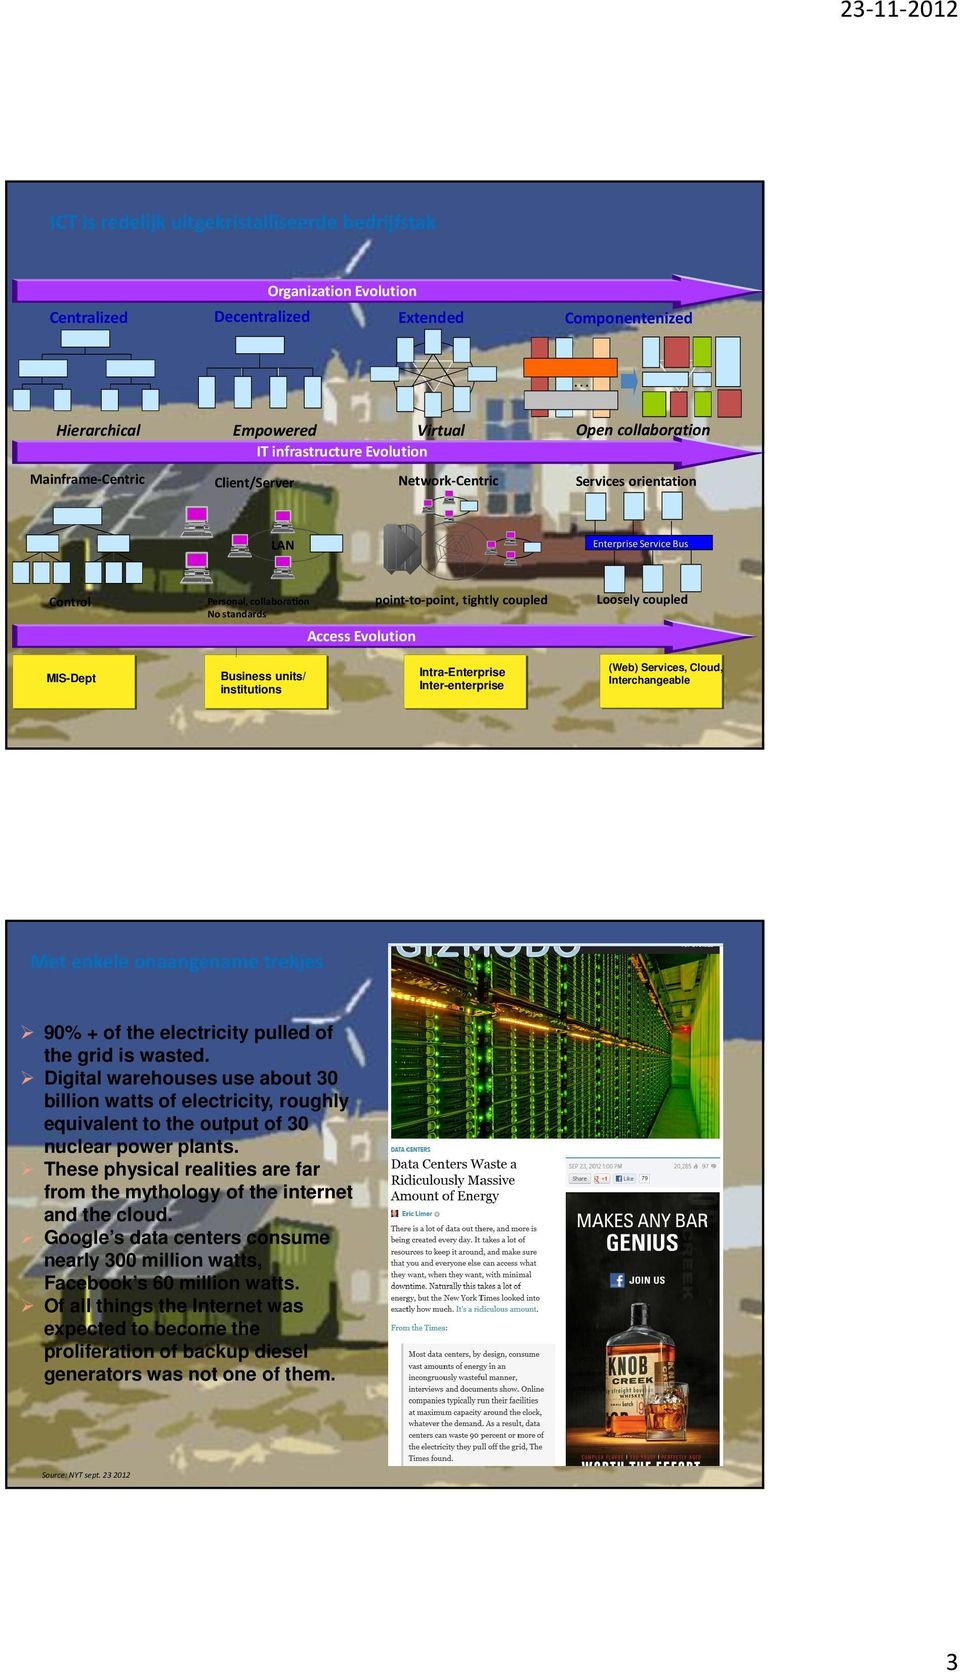 MIS-Dept units/ institutions Intra-Enterprise Inter-enterprise (Web), Cloud, Interchangeable Met enkele onaangename trekjes 90% + of the electricity pulled of the grid is wasted.